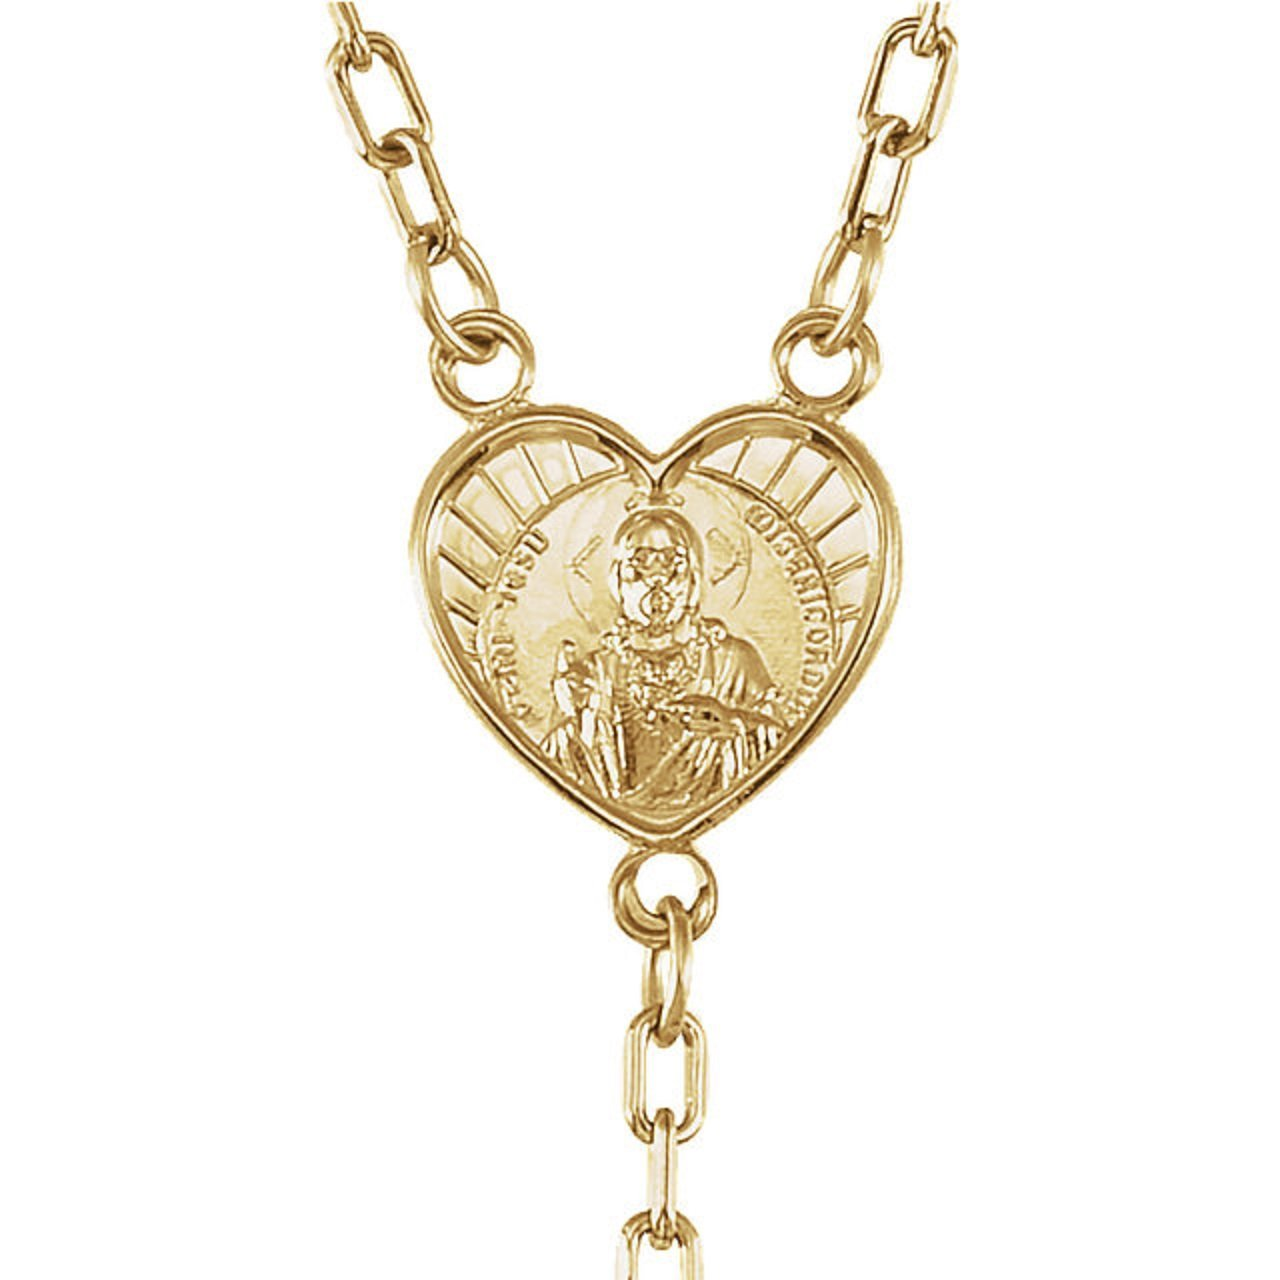 Roxx Fine Jewelry 14K Gold Filled and Rose Quartz Ornate Sacred Heart Center 27'' Rosary Necklace 2.00mm Beads by Roxx Fine Jewelry (Image #2)